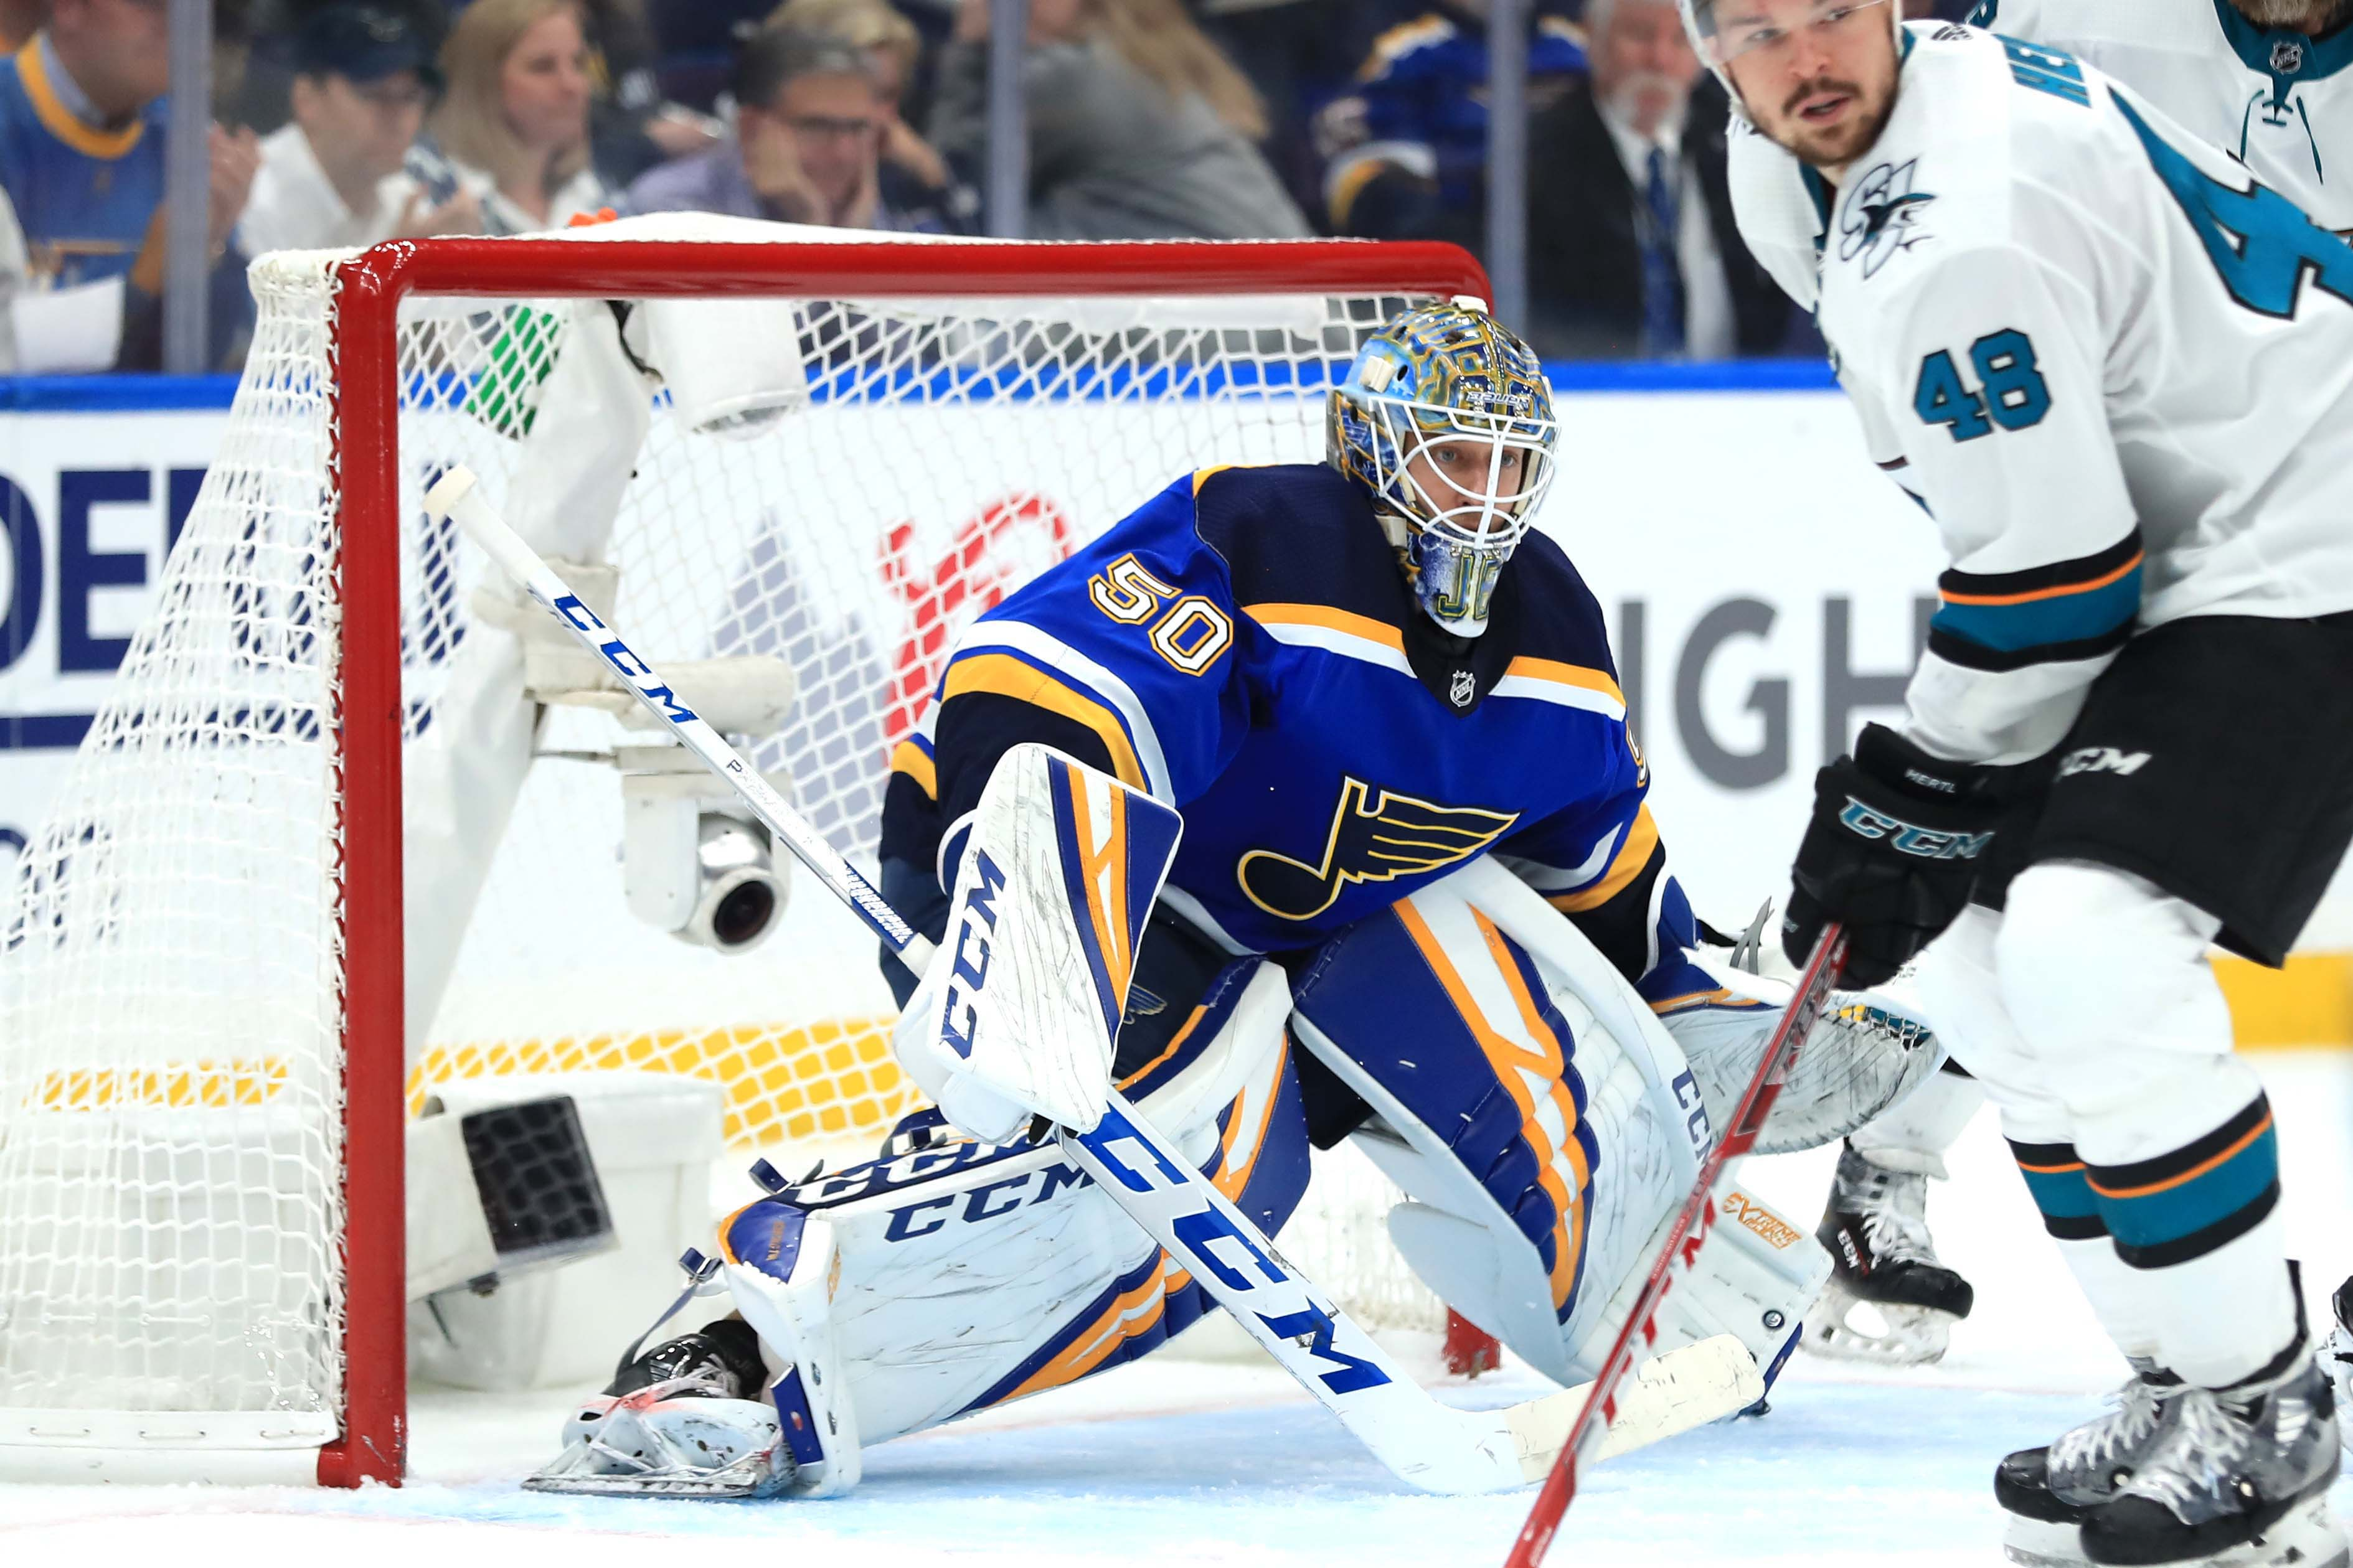 May 17, 2019; St. Louis, MO, USA; St. Louis Blues goaltender Jordan Binnington (50) defends the net against the San Jose Sharks in the third period during game four of the Western Conference Final of the 2019 Stanley Cup Playoffs at Enterprise Center.